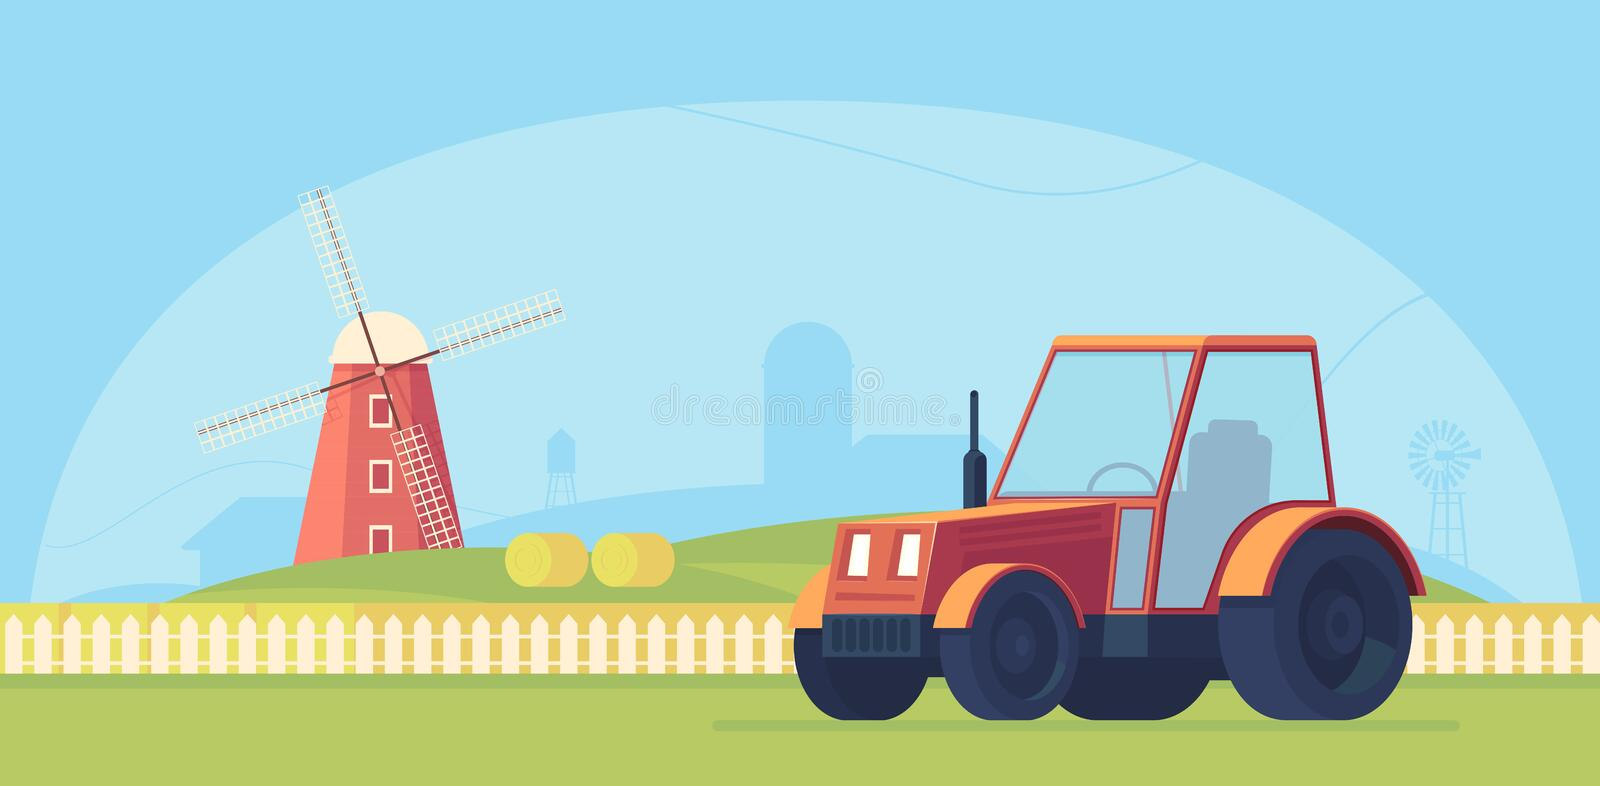 Agriculture. Farm rural landscape with red windmill, tractor and haystack. Vector flat illustration royalty free illustration